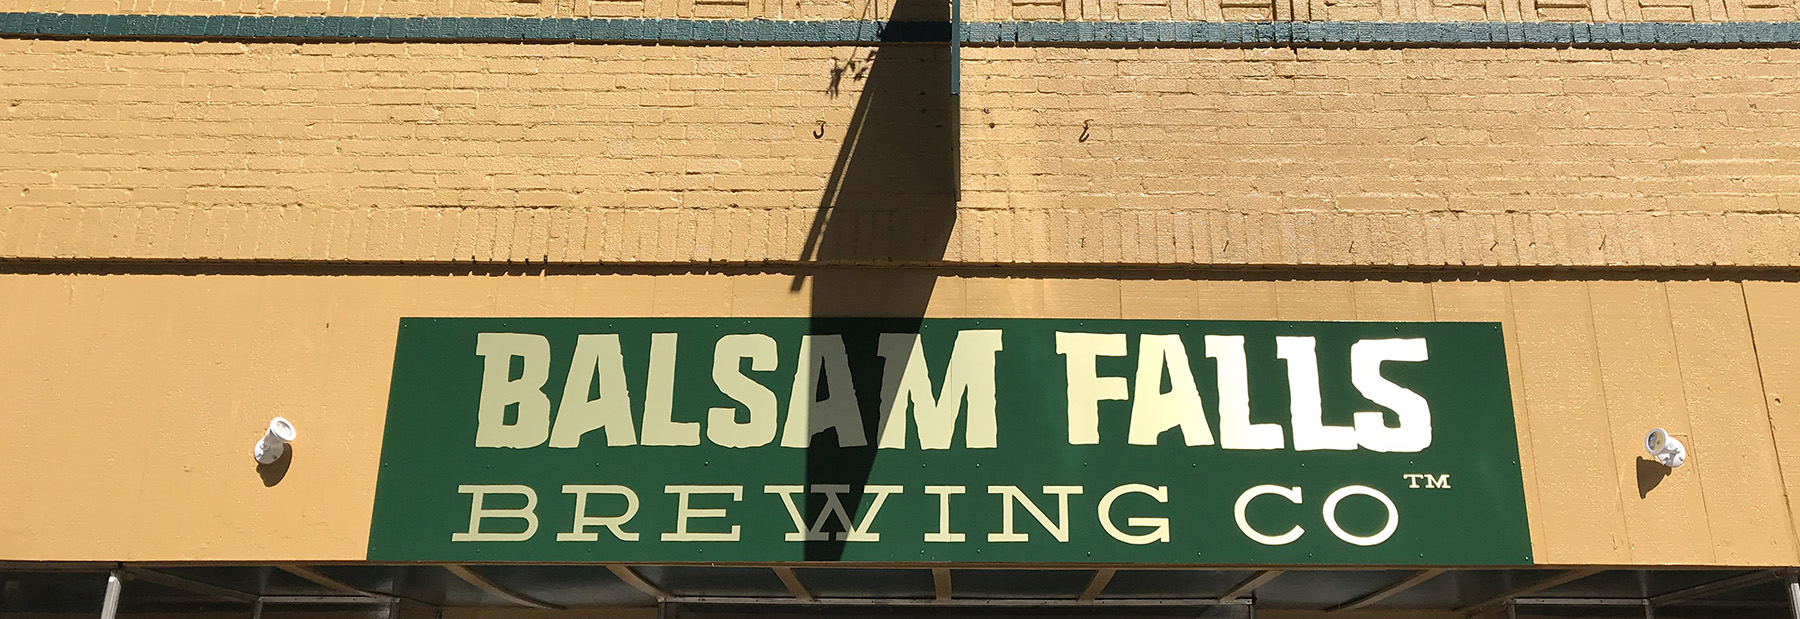 Photo of Balsam Falls Brewing Co.